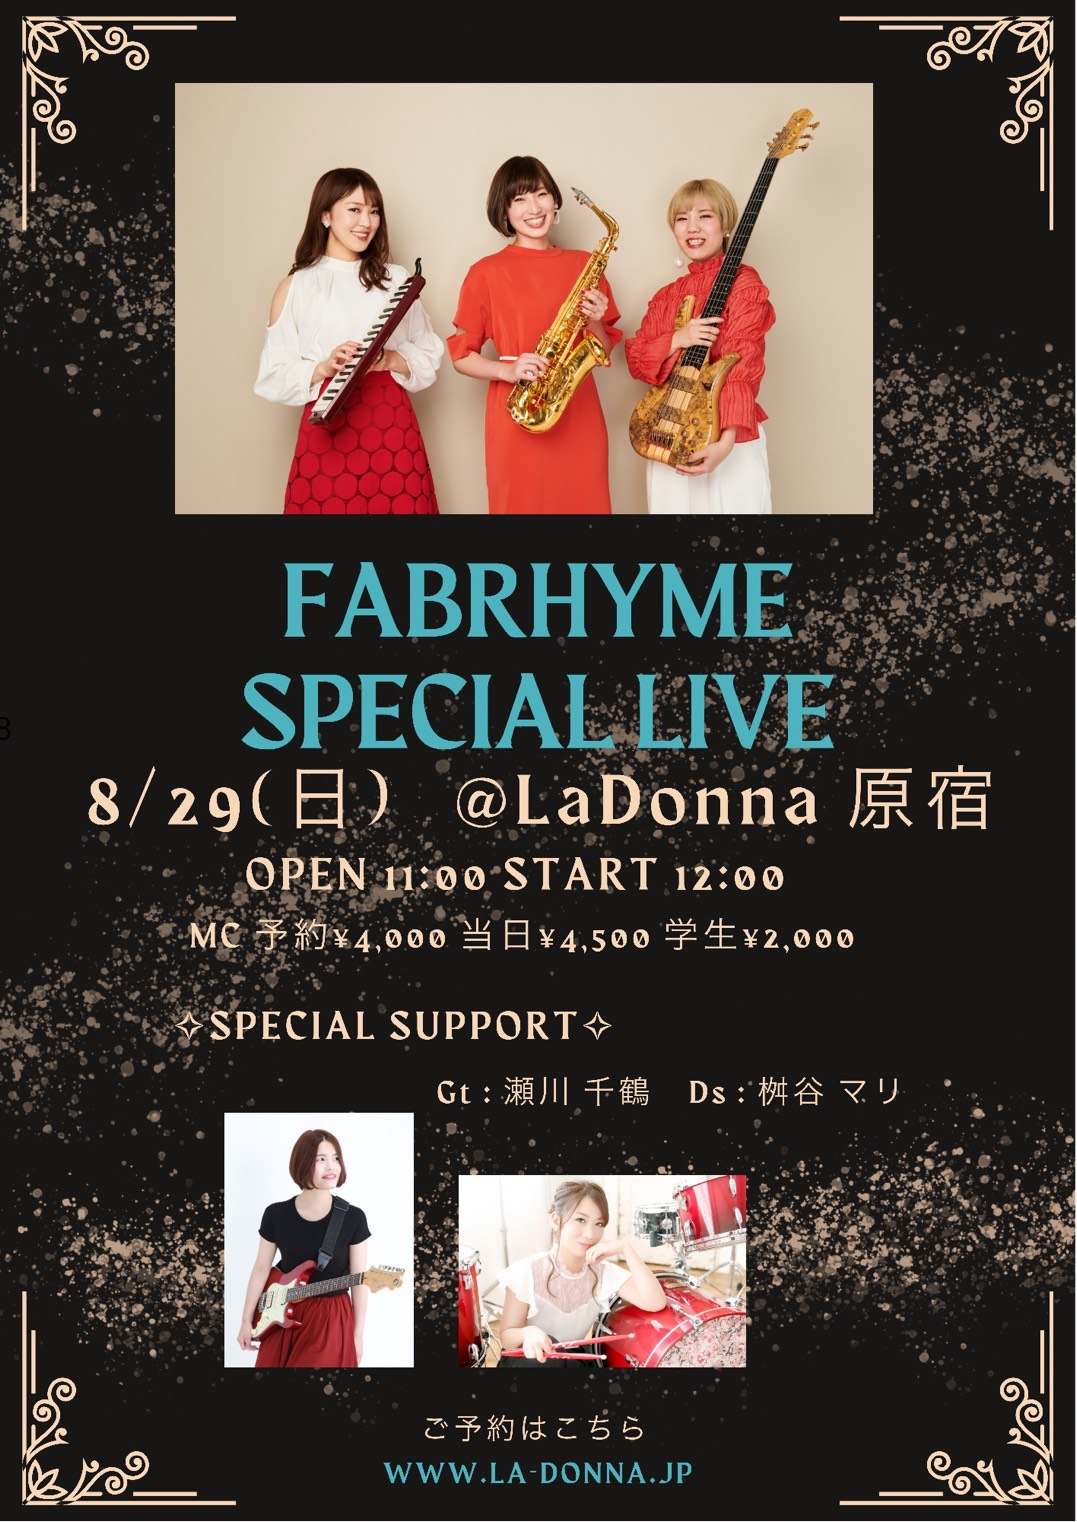 FABRHYME SPECIAL LIVE